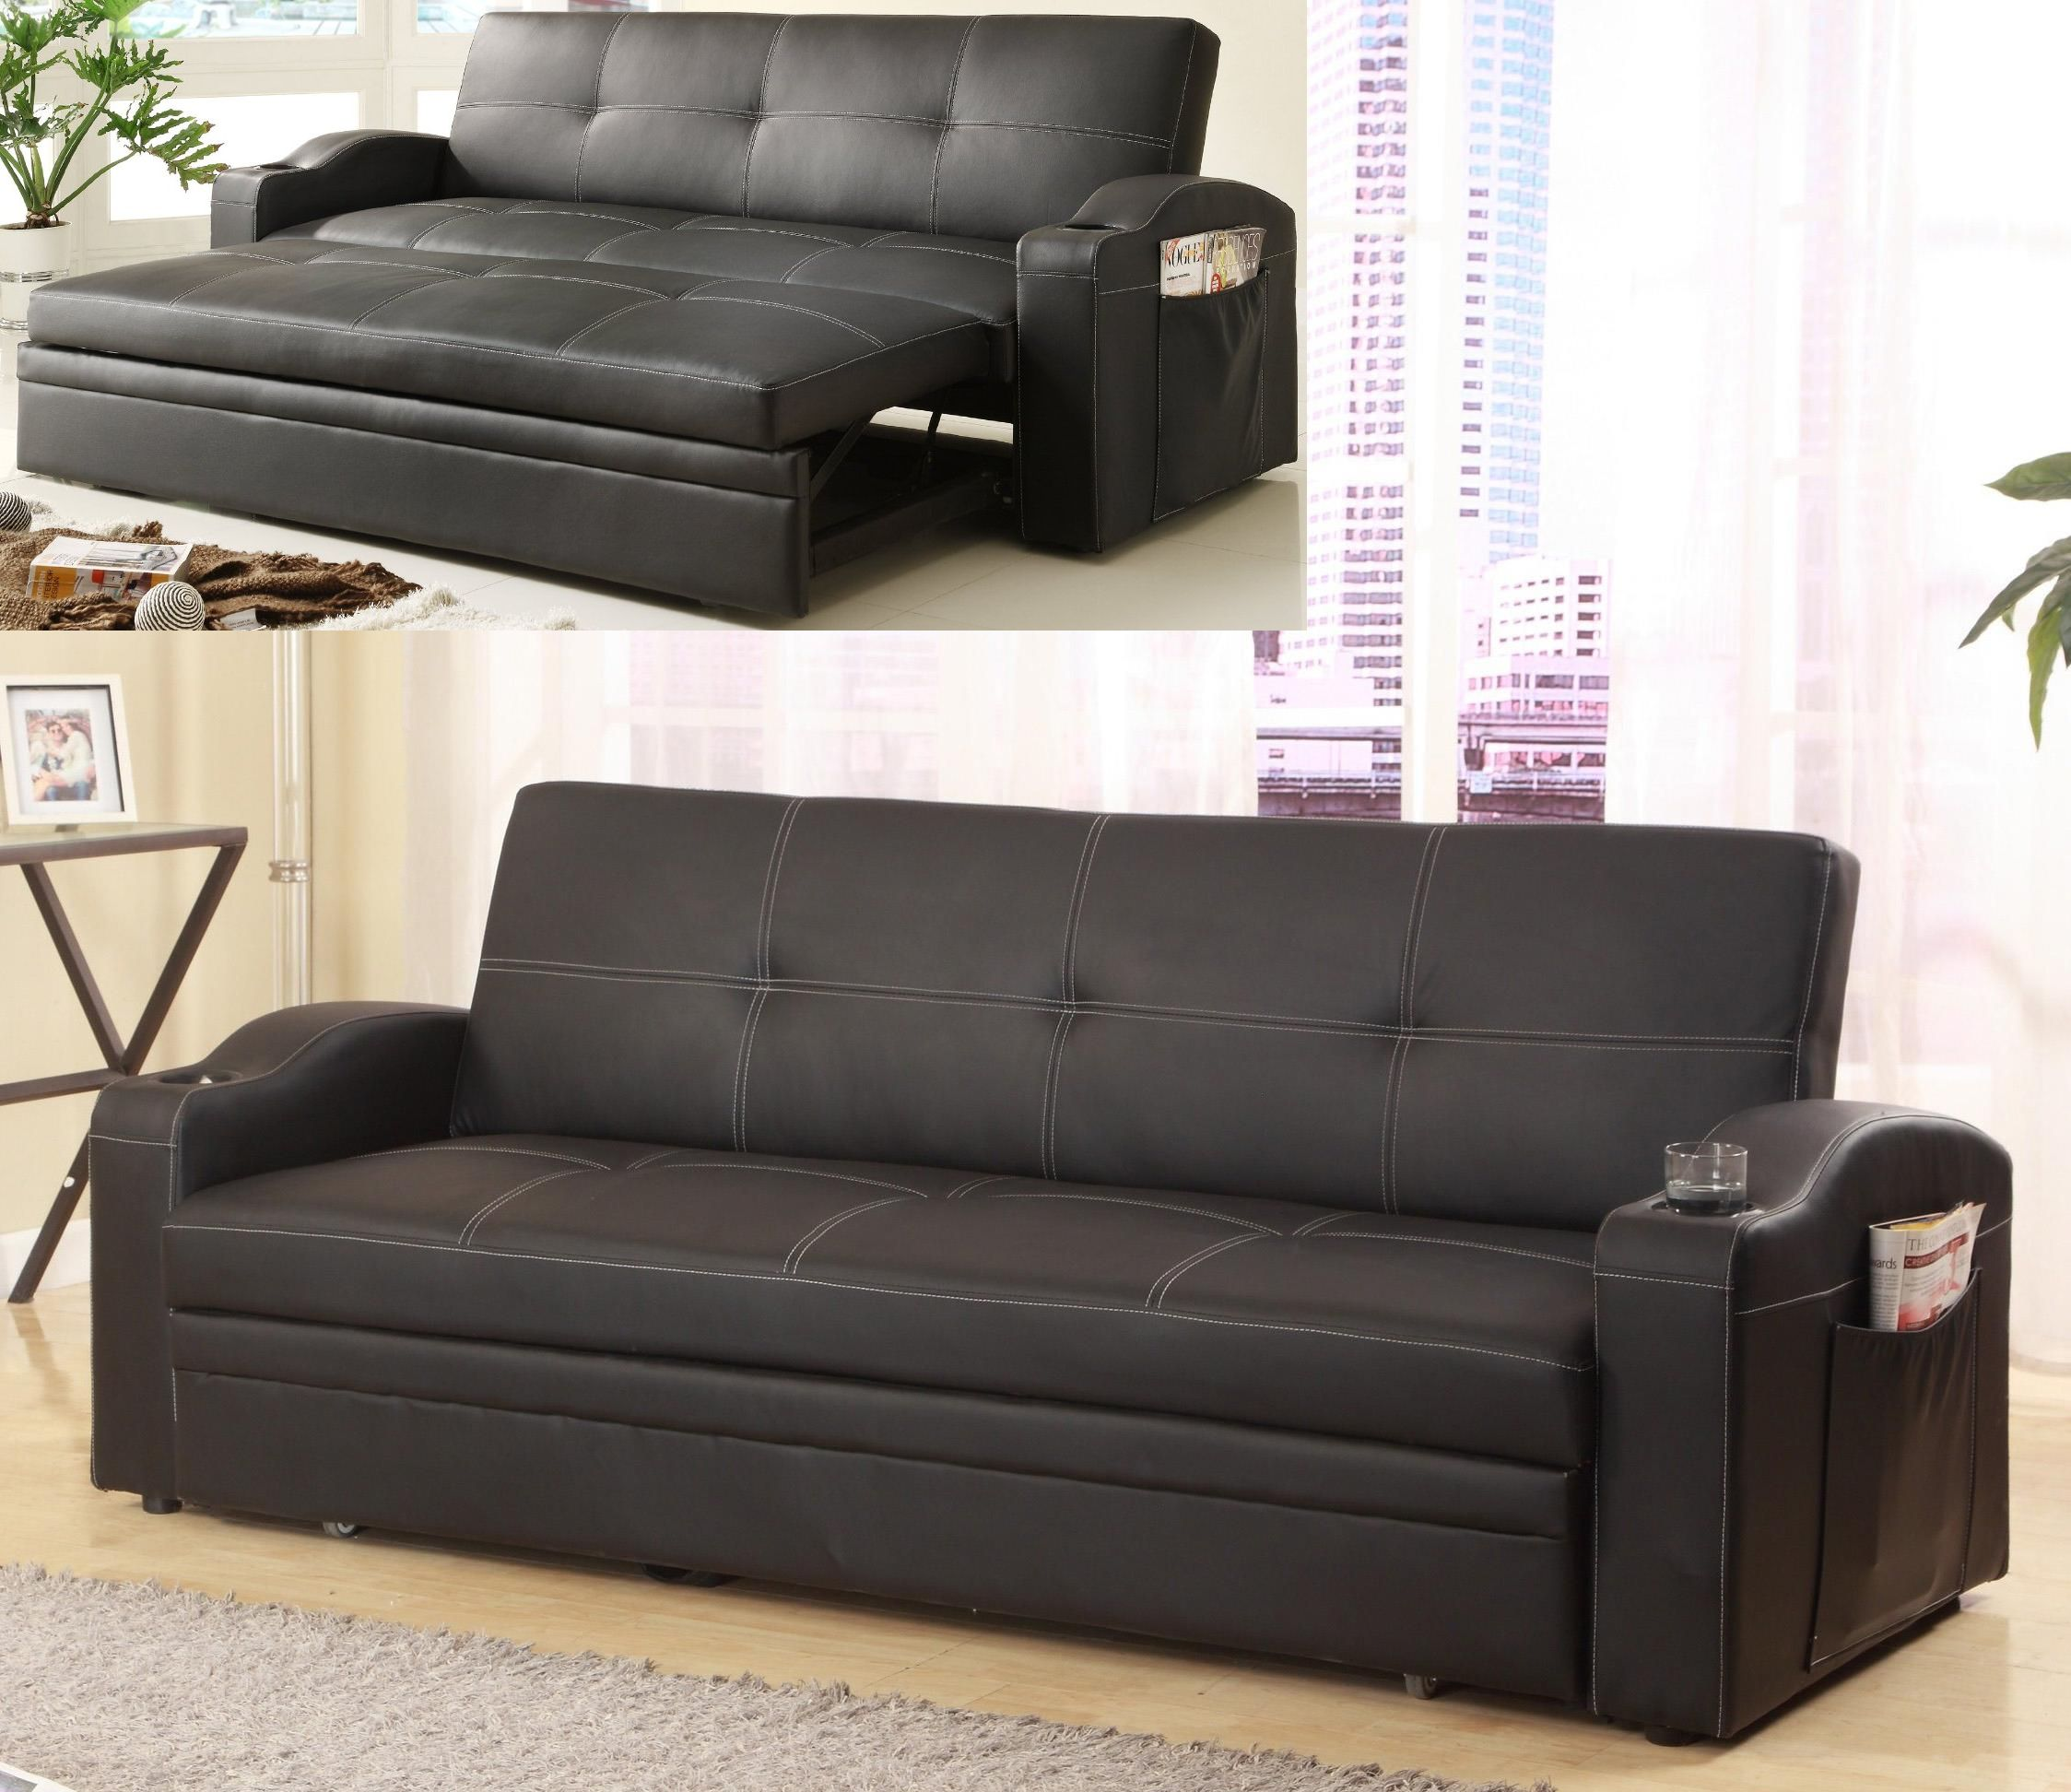 Convertible Sofa Futon In Bonded Leather With Cup Holderagazine Pouches 499 00 C M 5310